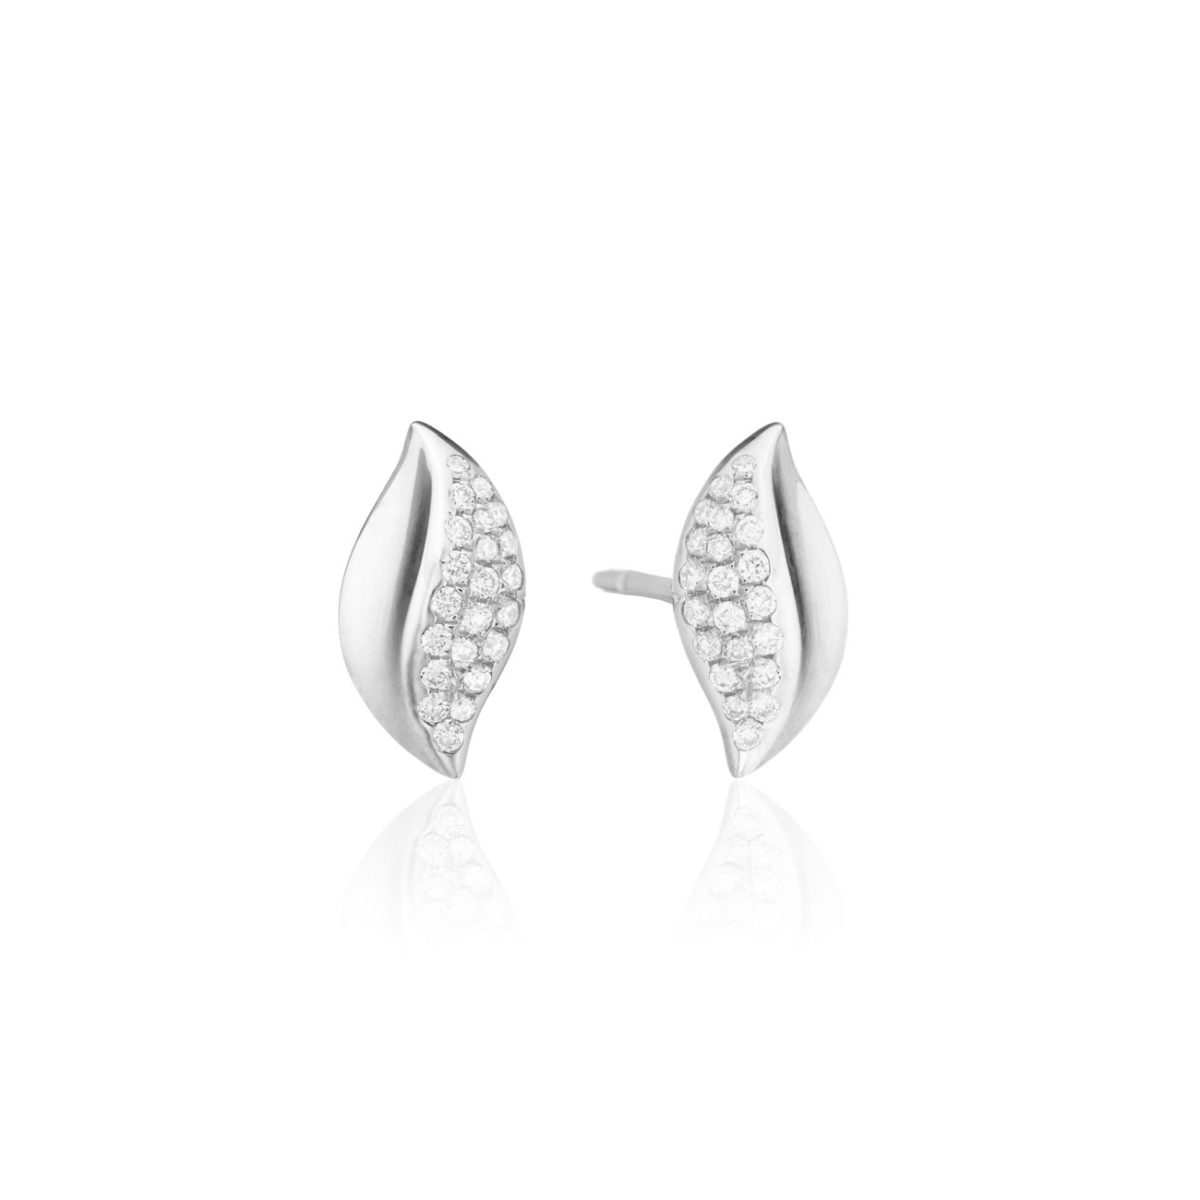 Graymoor Lane Solstice Diamond Stud Earrings In White